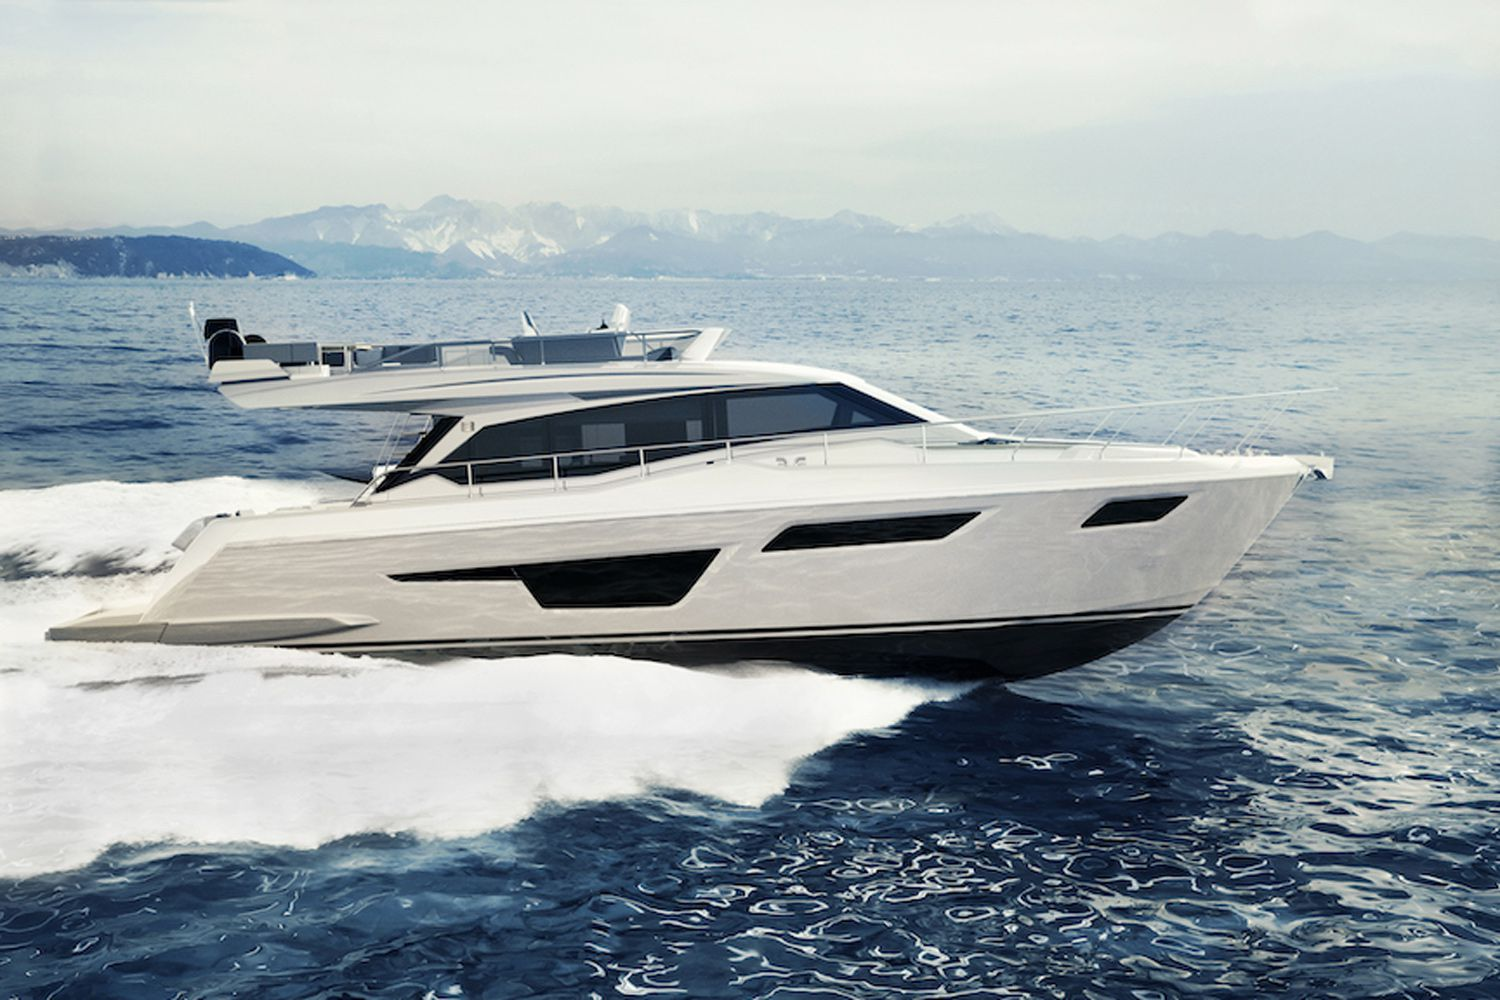 Ferretti Yachts says the 500 will cruise at 25 knots and have a 30-knot top speed.